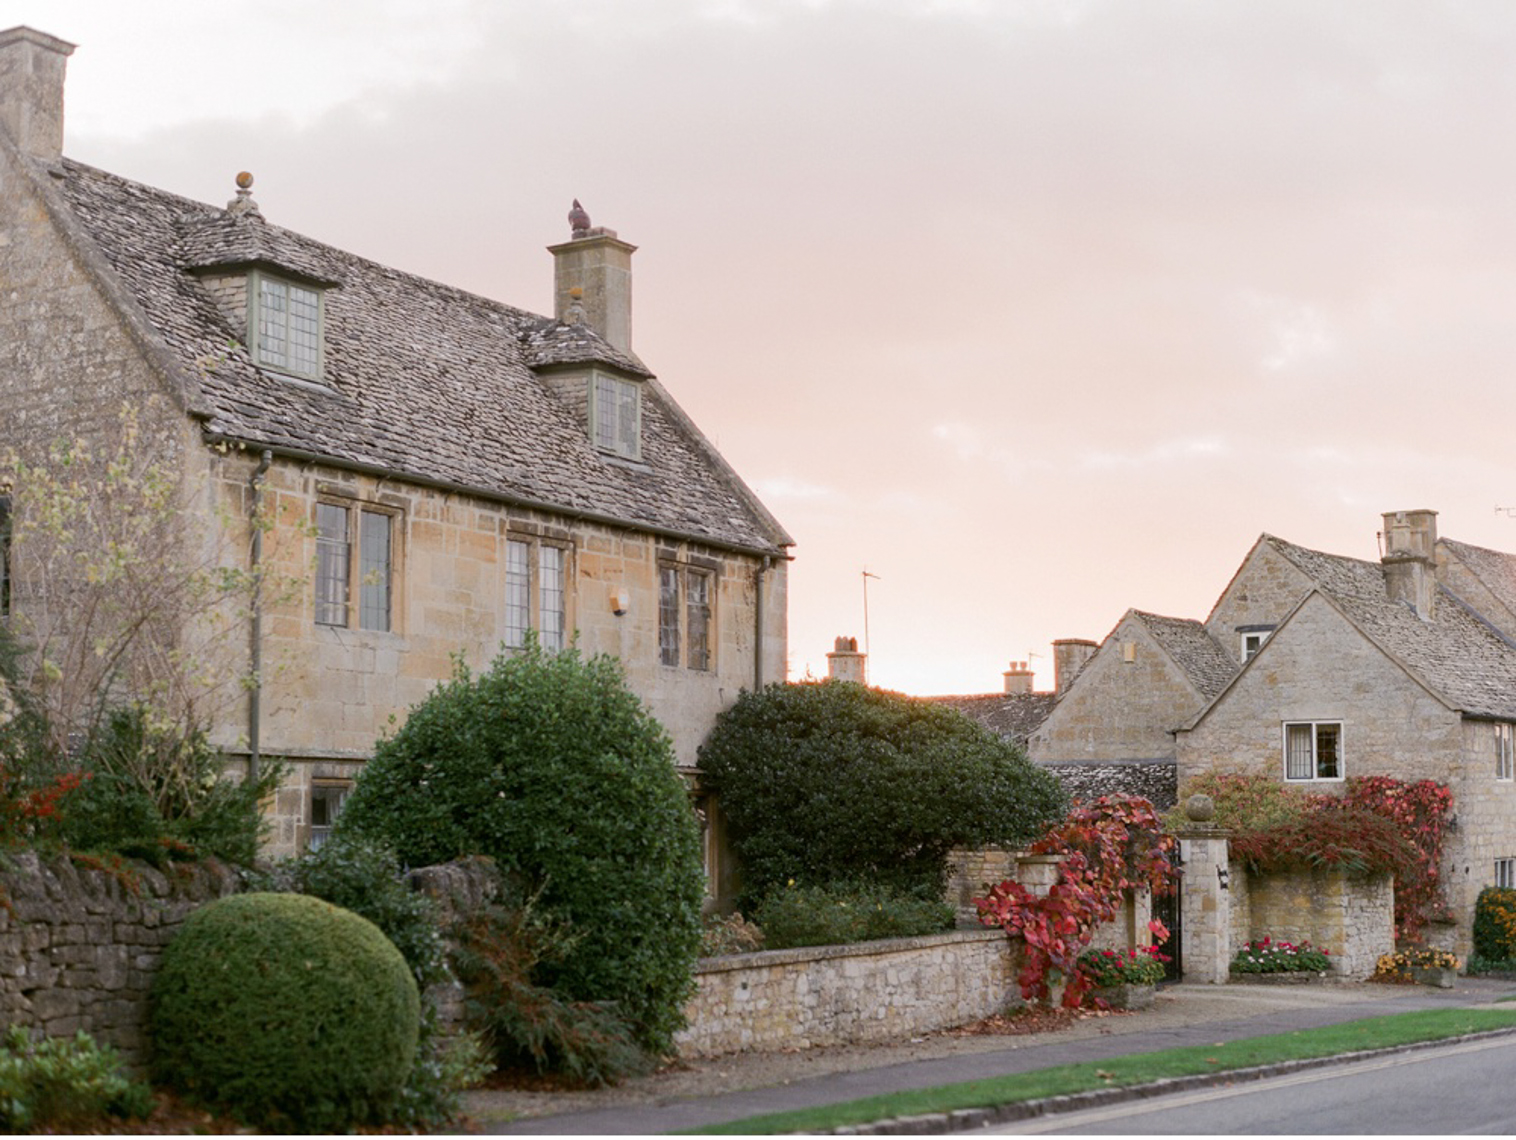 Cotswolds_WeddingPhotographer_UK©MadalinaSheldon_92.jpg